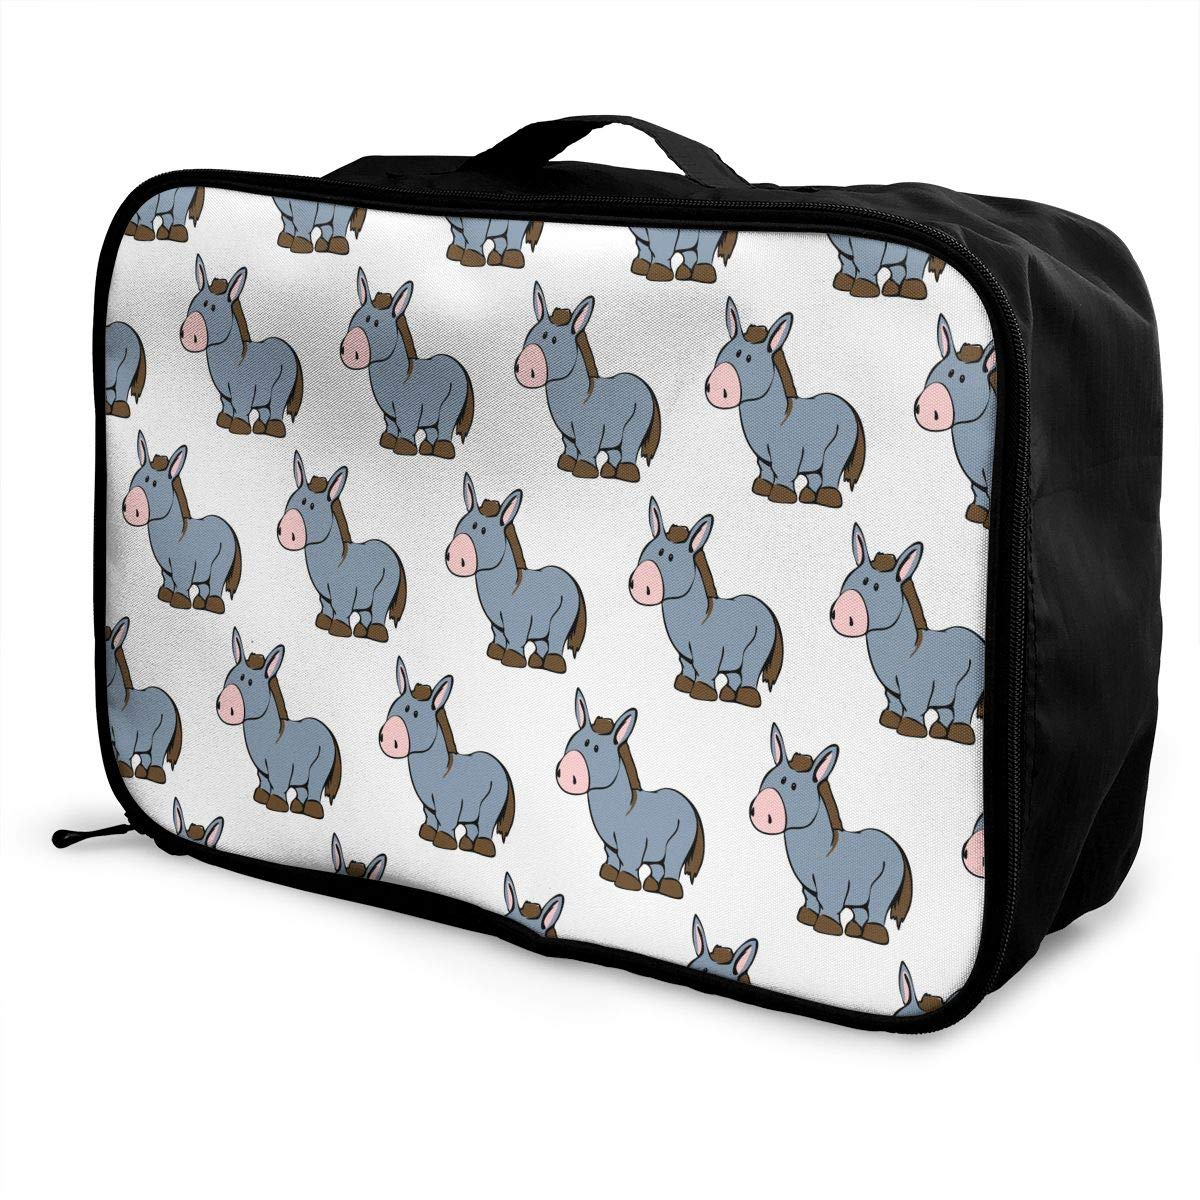 WONDERMAKE Perfect Travel Partner Large Capacity Travel Luggage Storage Bag Sleeve for Suitcase Trolley Handles Travel Duffel Tote Bag Cute Dogs Corgis Breed